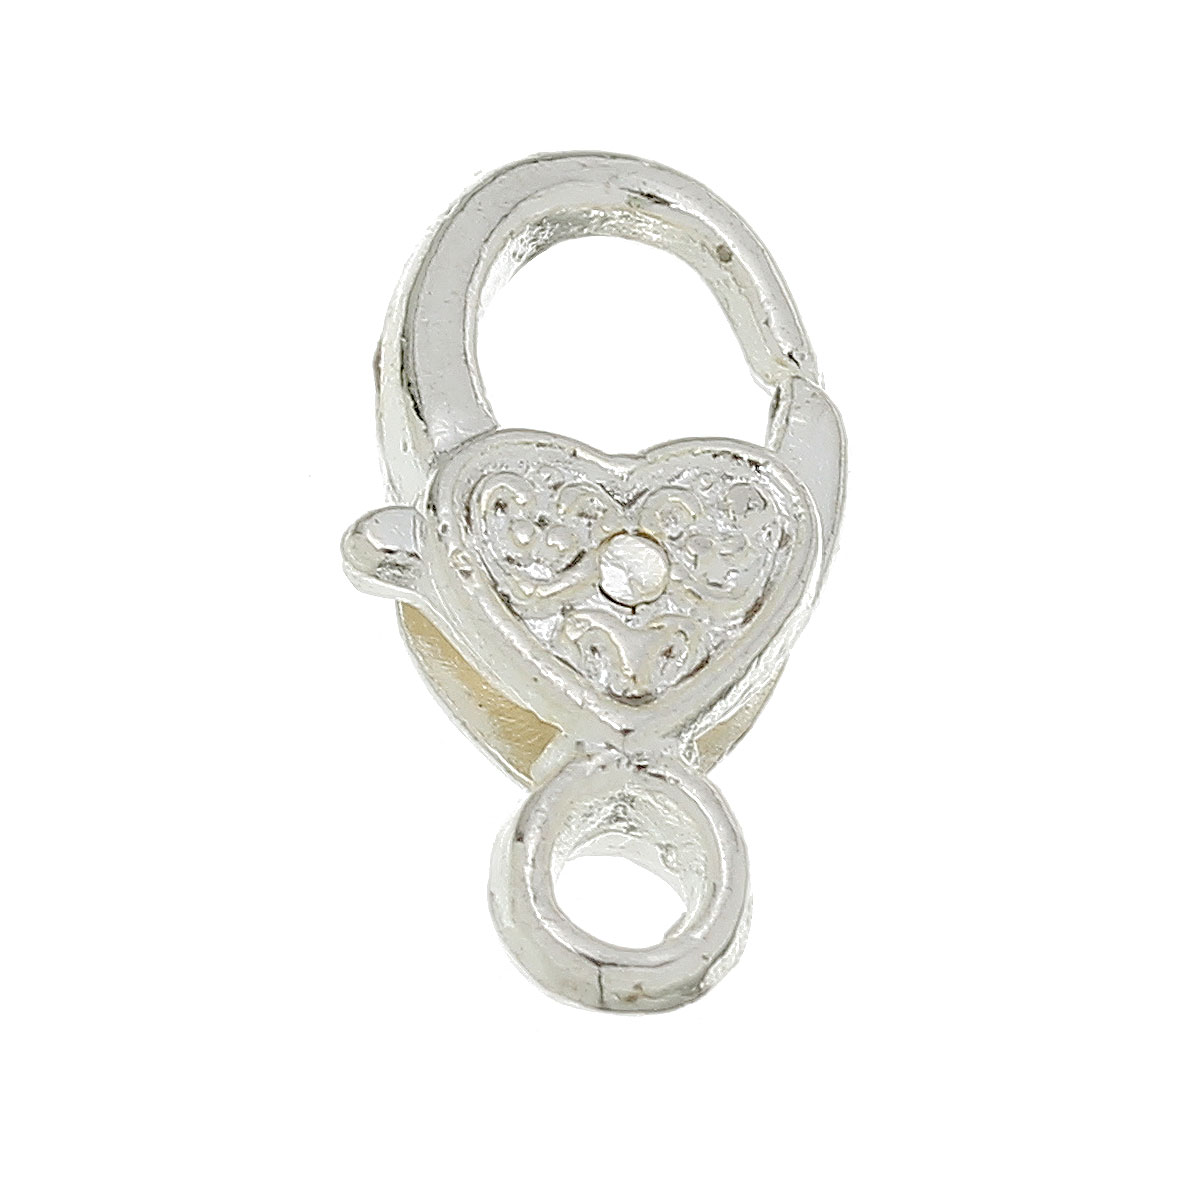 DoreenBeads Zinc metal alloy Lobster Clasp Findings Silver color Heart Pattern 17mm( 5/8) x 9mm( 3/8), 2 Pieces 2017 newDoreenBeads Zinc metal alloy Lobster Clasp Findings Silver color Heart Pattern 17mm( 5/8) x 9mm( 3/8), 2 Pieces 2017 new